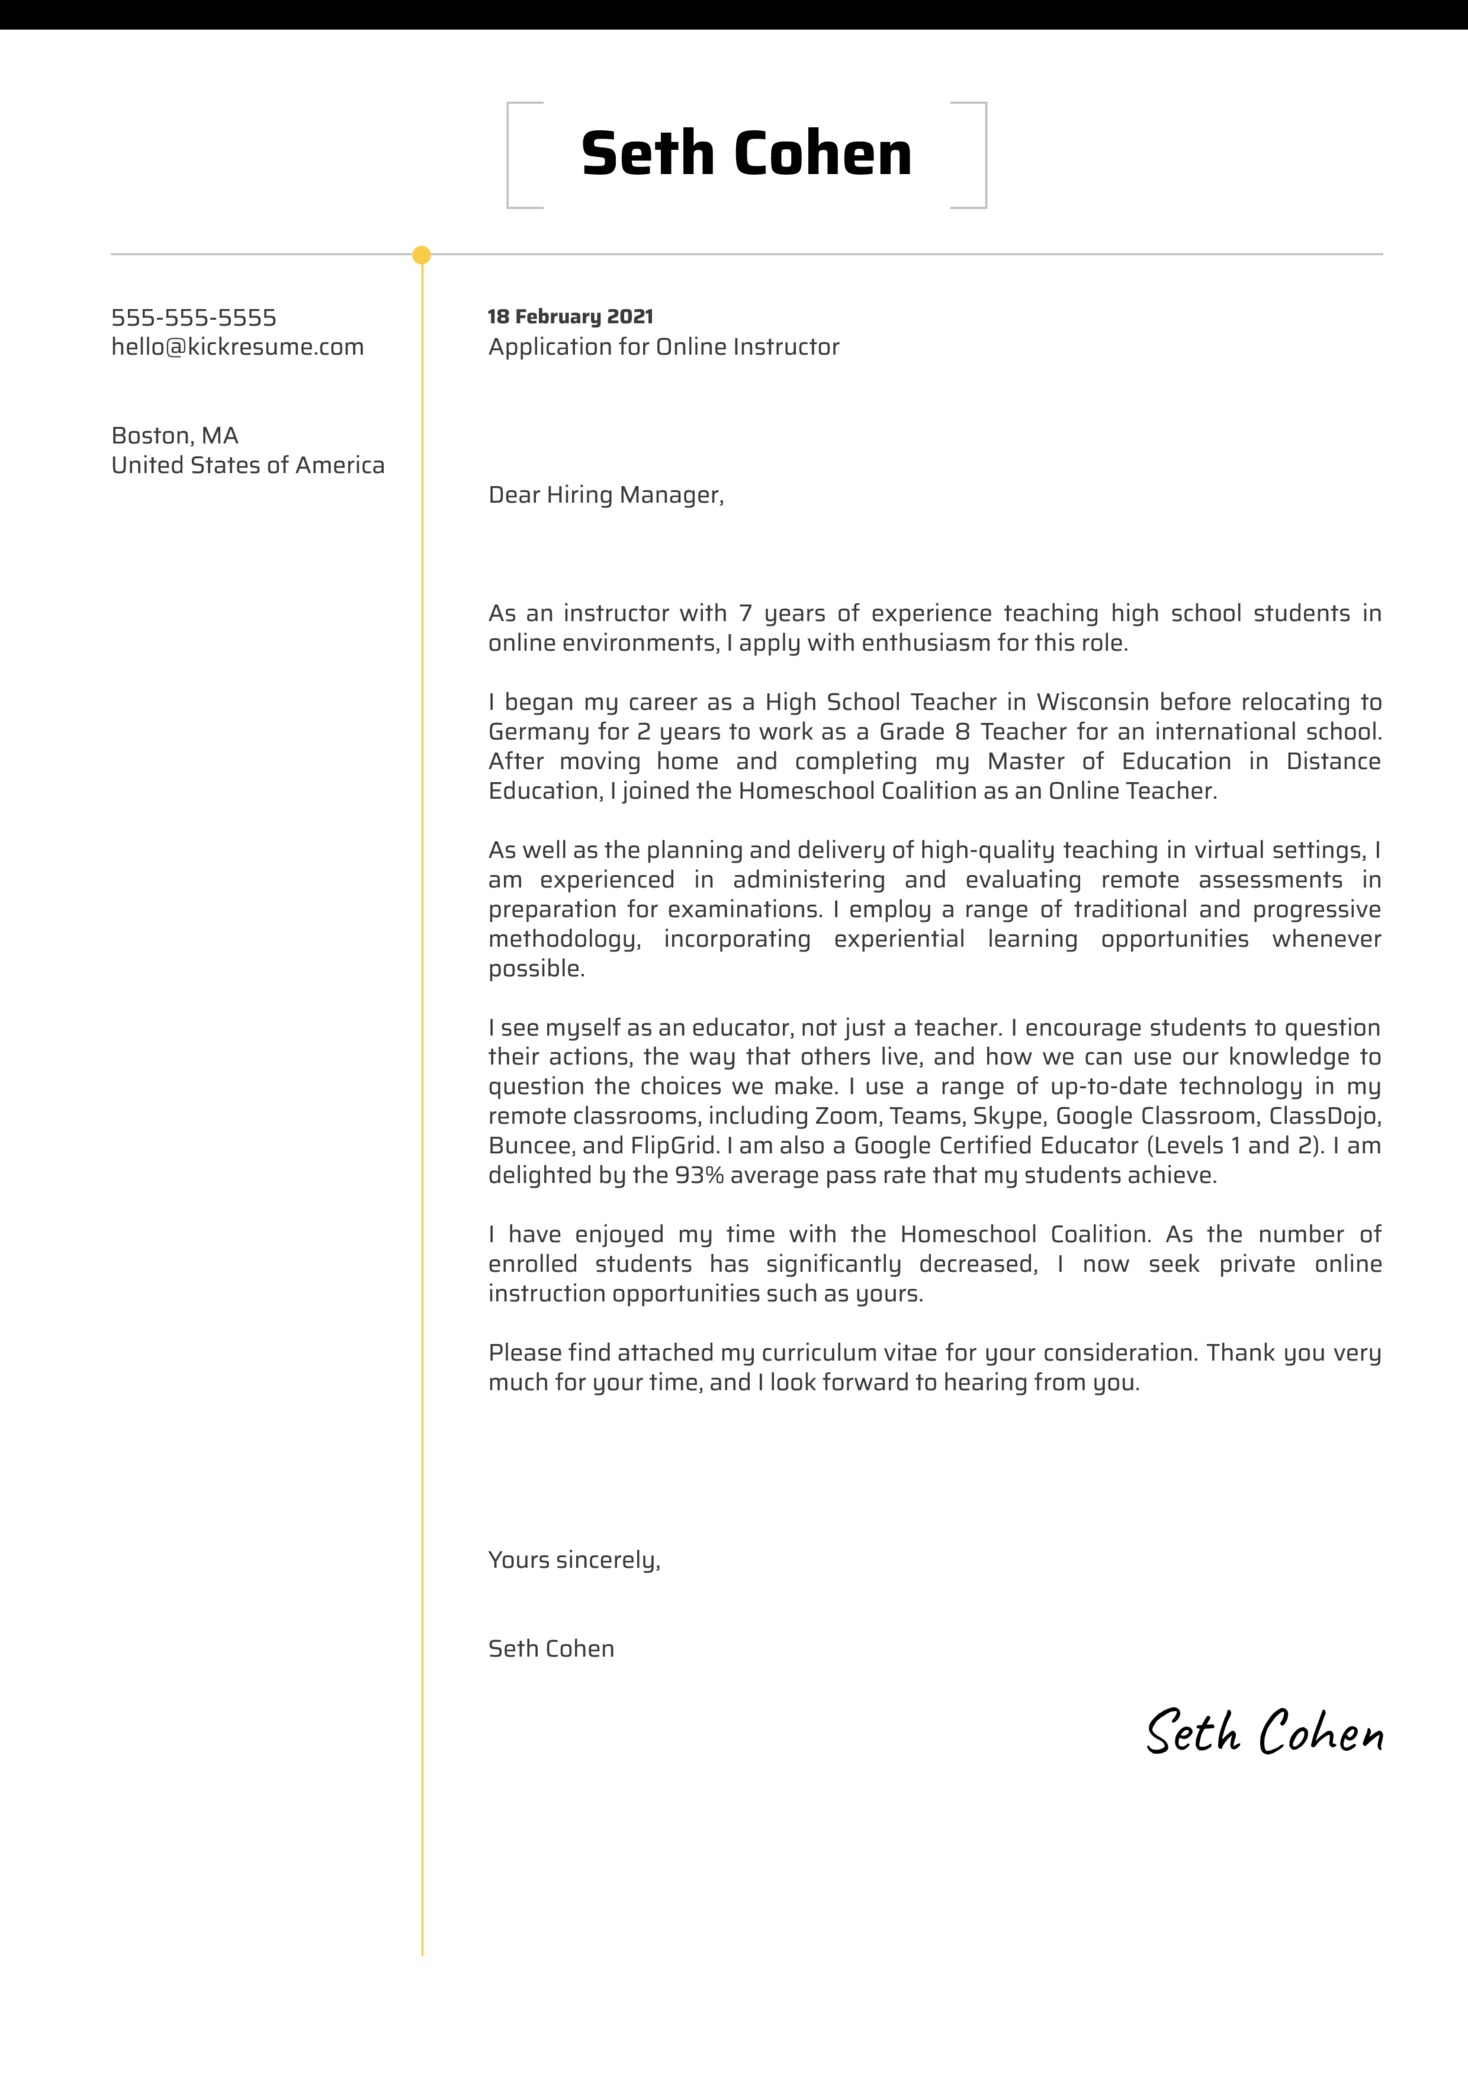 Online Instructor Cover Letter Example